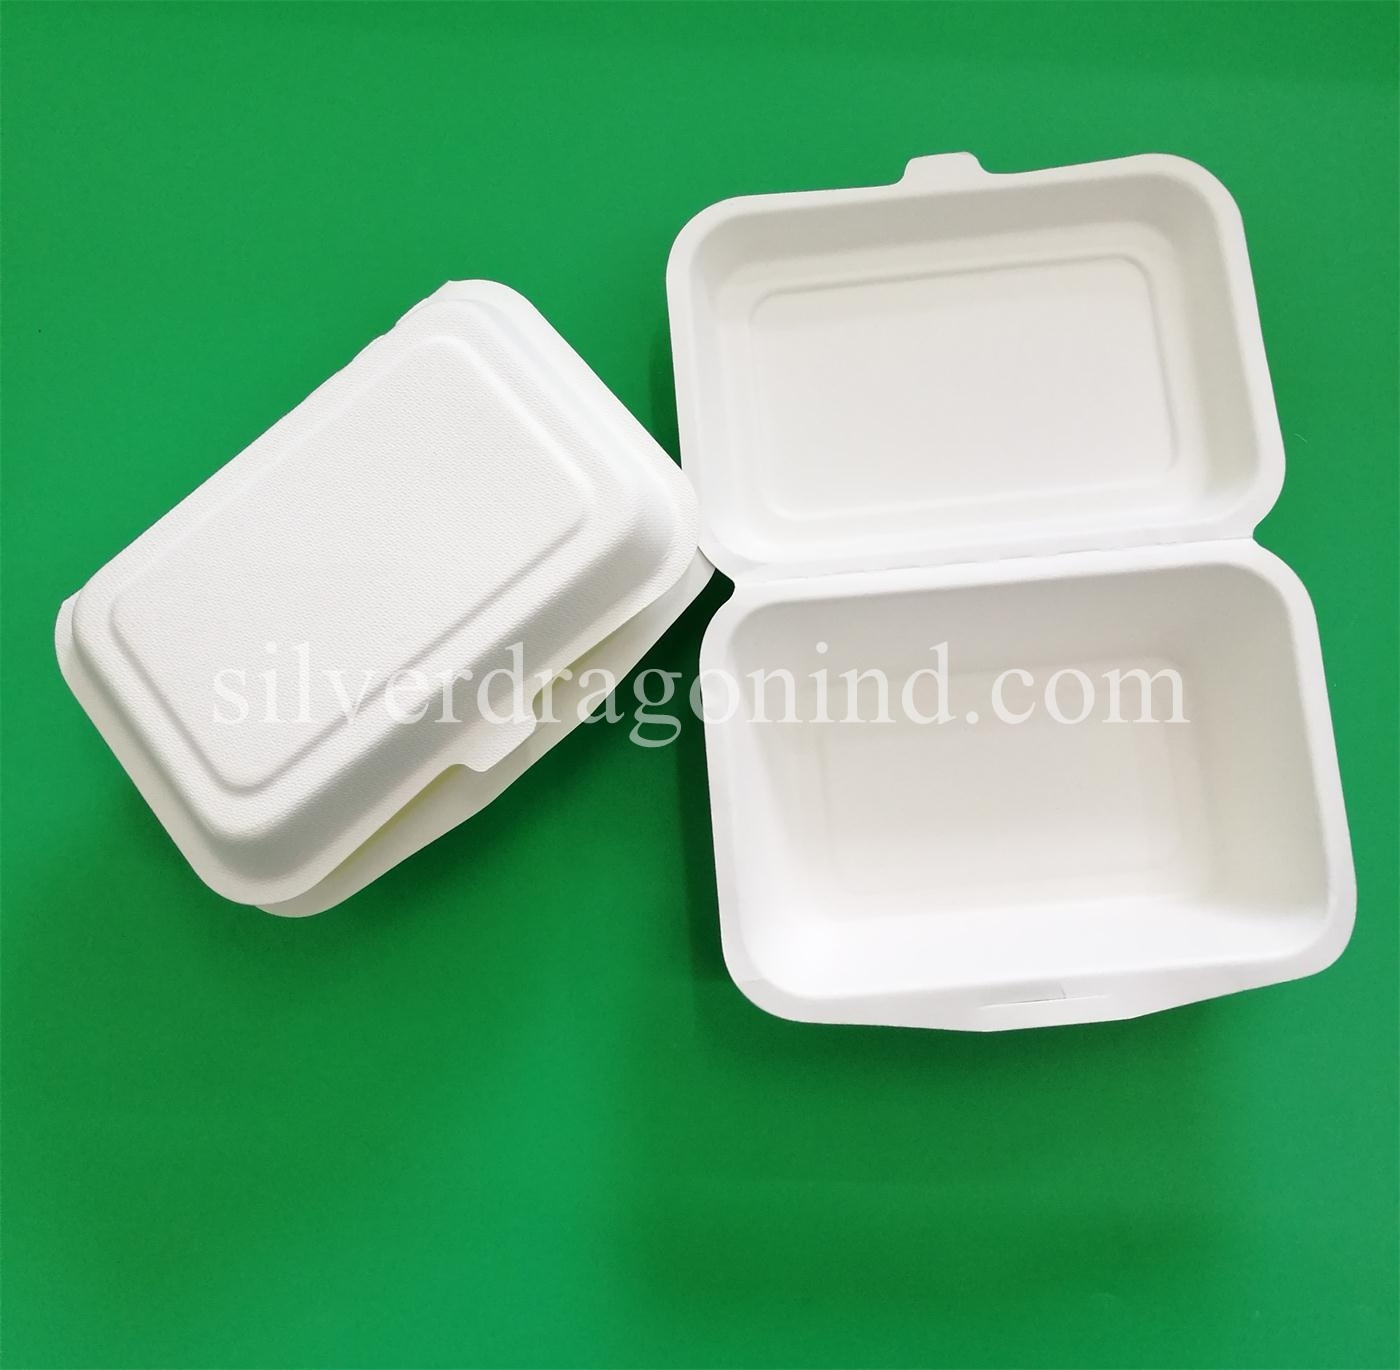 Compostable Biodegradable Sugarcane Bagasse Paper Lunch Box 600ml, Paper Tableware